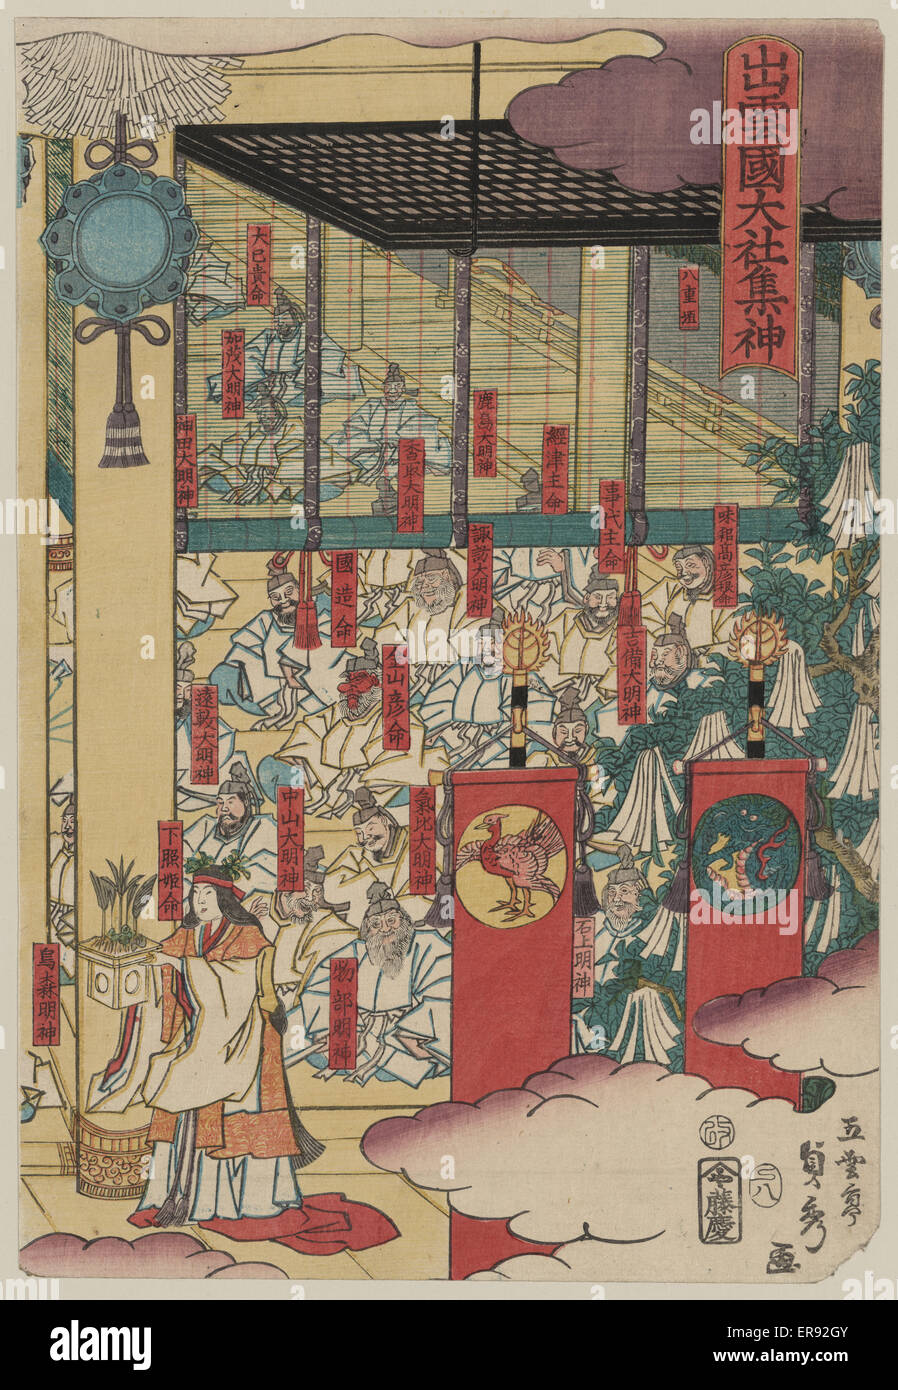 Gathering of gods at the great shrine at Izumo. Print shows large room at a shrine with many gods (in human form) - Stock Image